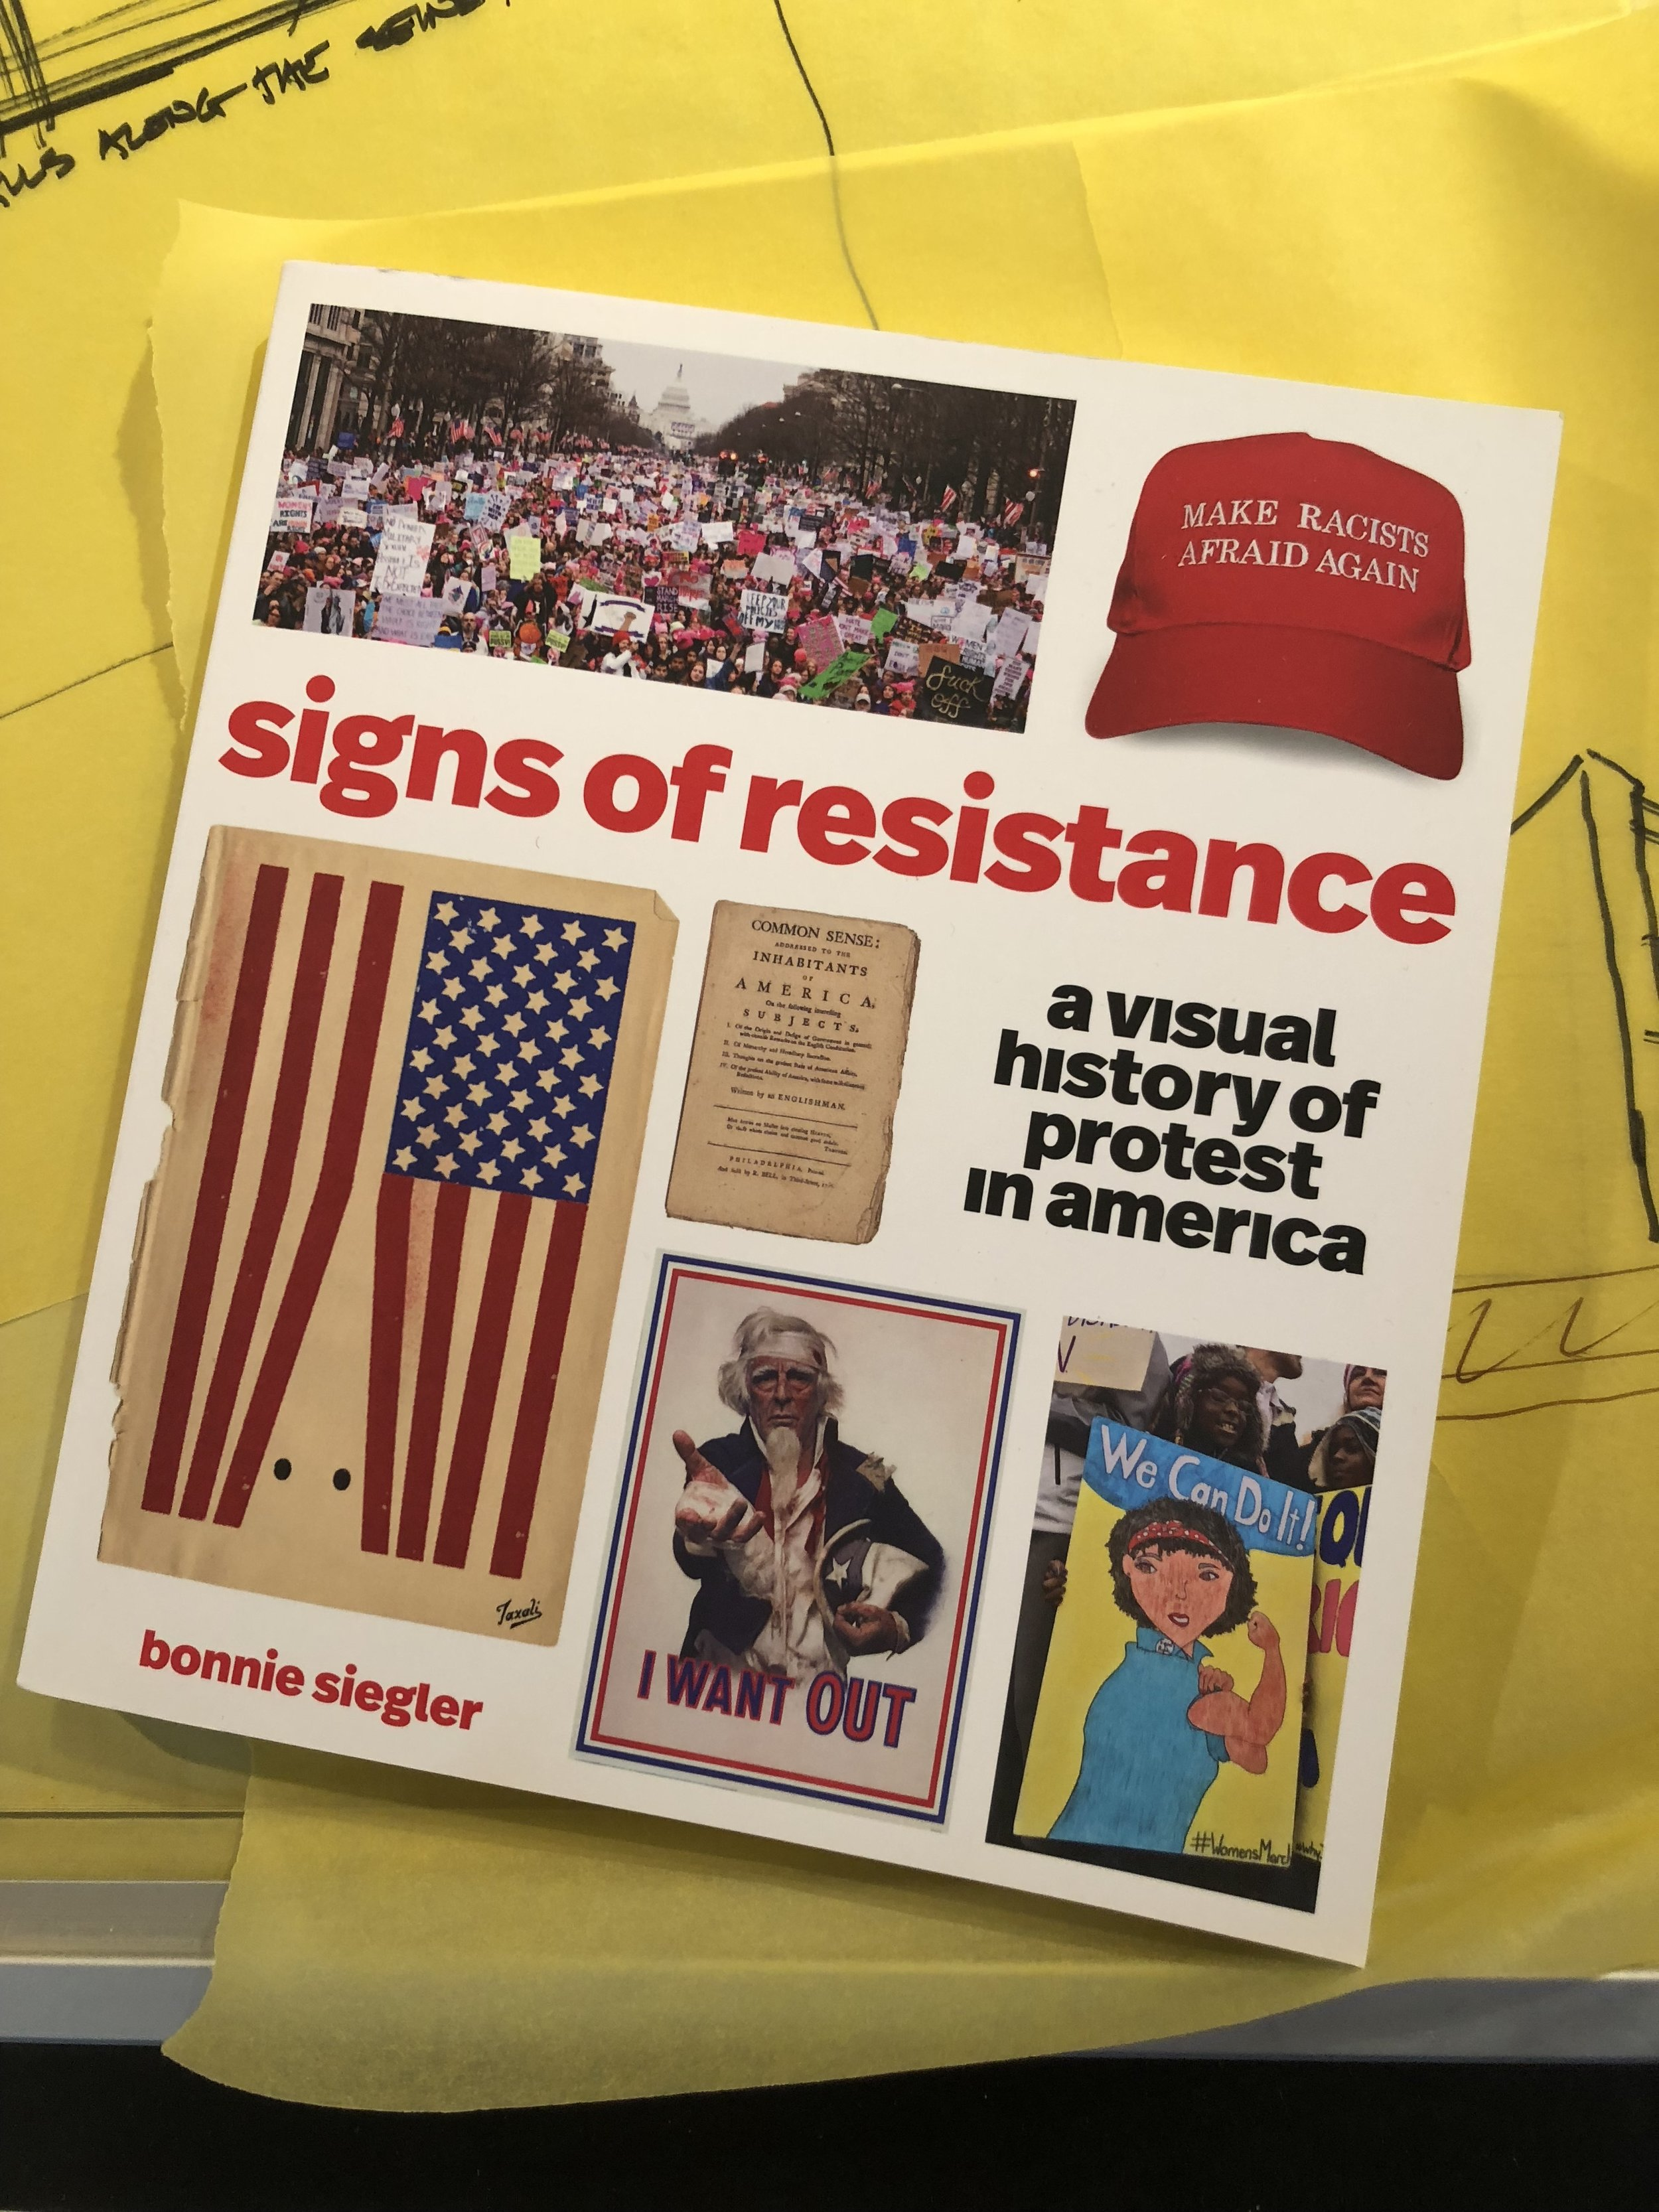 Signs of Resistance , and new book by Bonnie Siegler